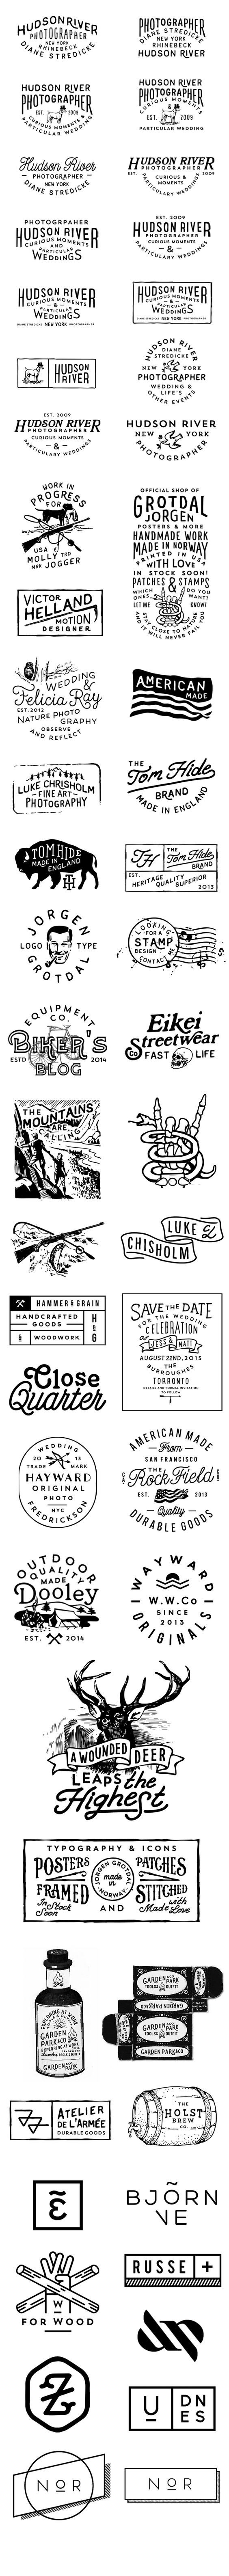 Hand drawn type and logo types and badges. Vintage look and feel. great stuff!: